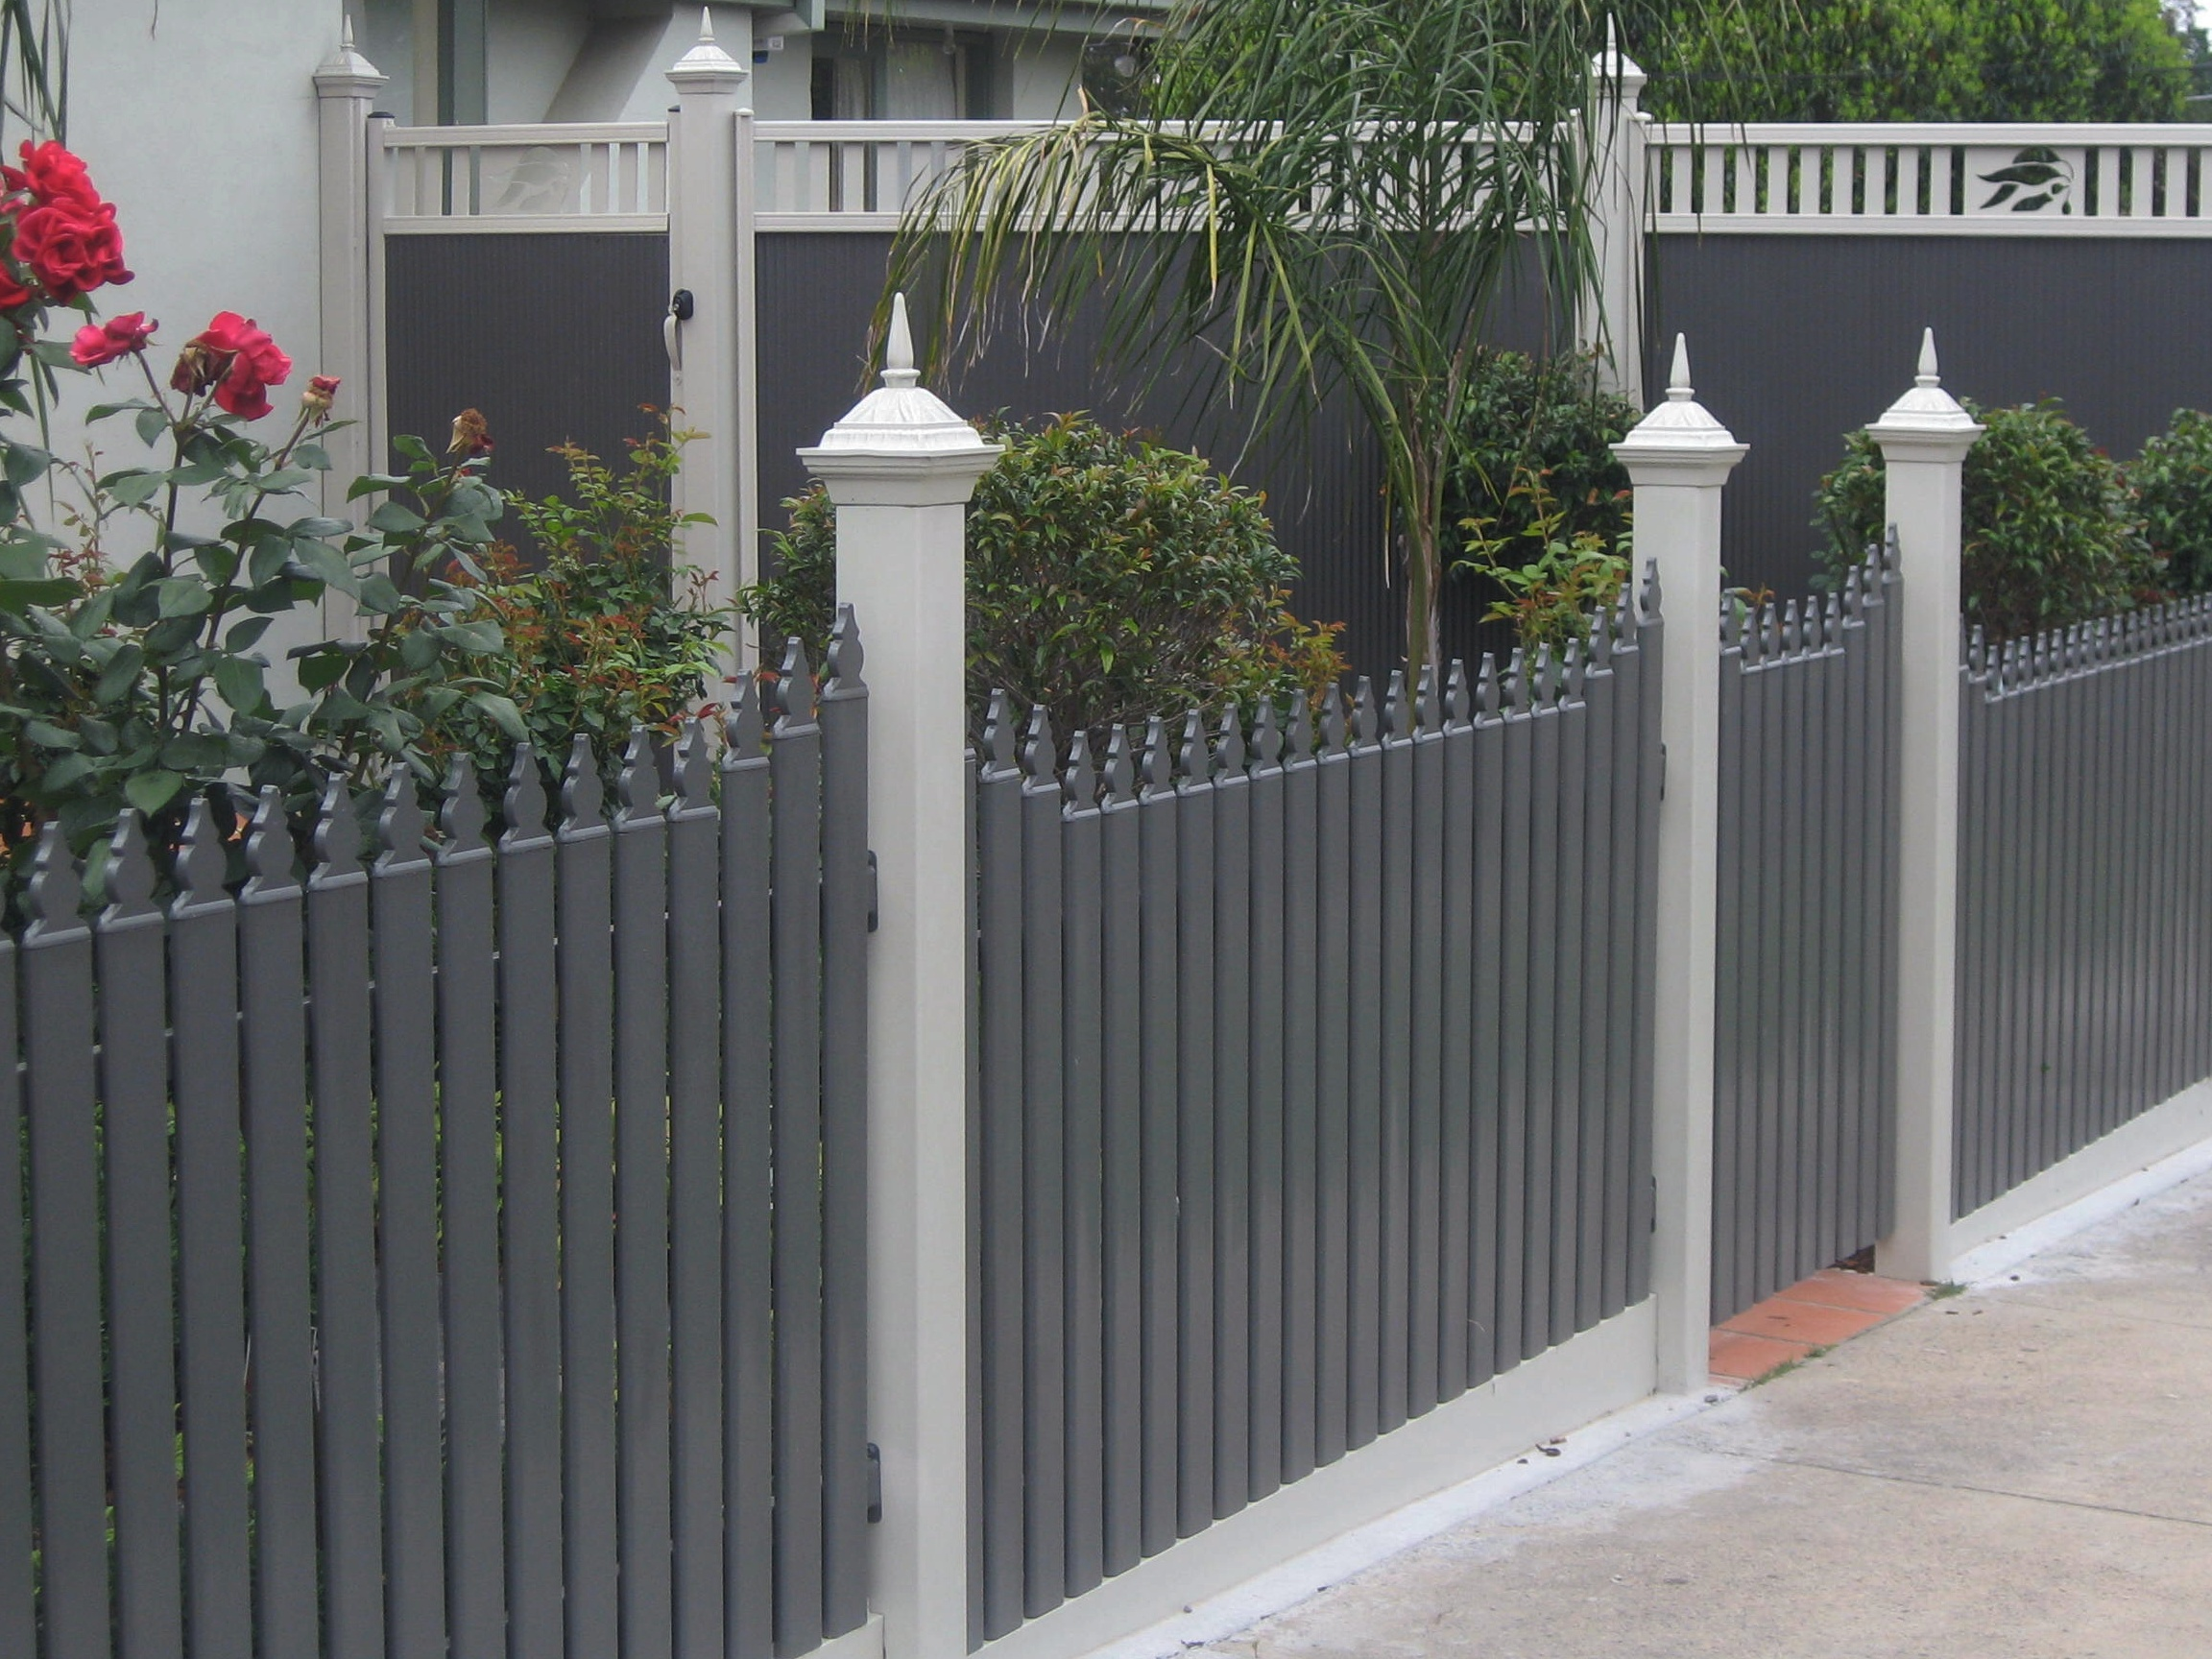 Corrugated Metal Fence Ideas Fence Made Using Old Diy Steel Fence